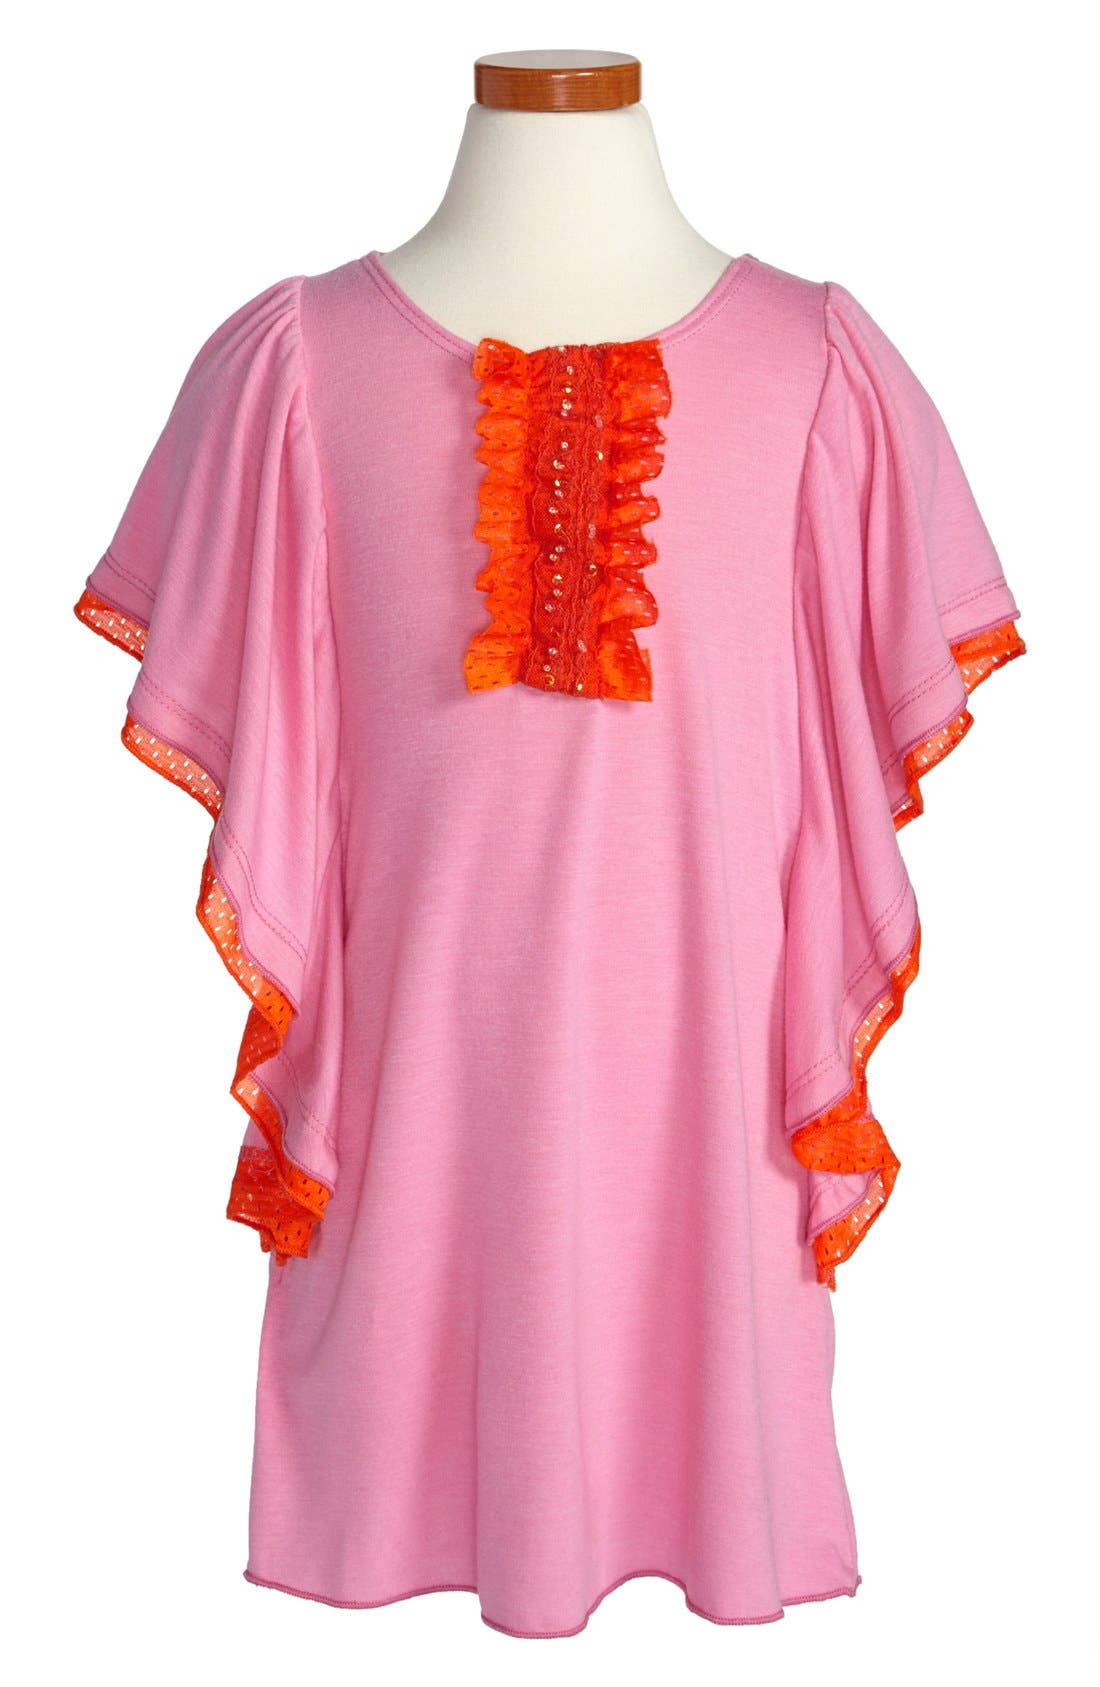 Alternate Image 1 Selected - Twirls & Twigs Flutter Sleeve Dress (Toddler Girls)